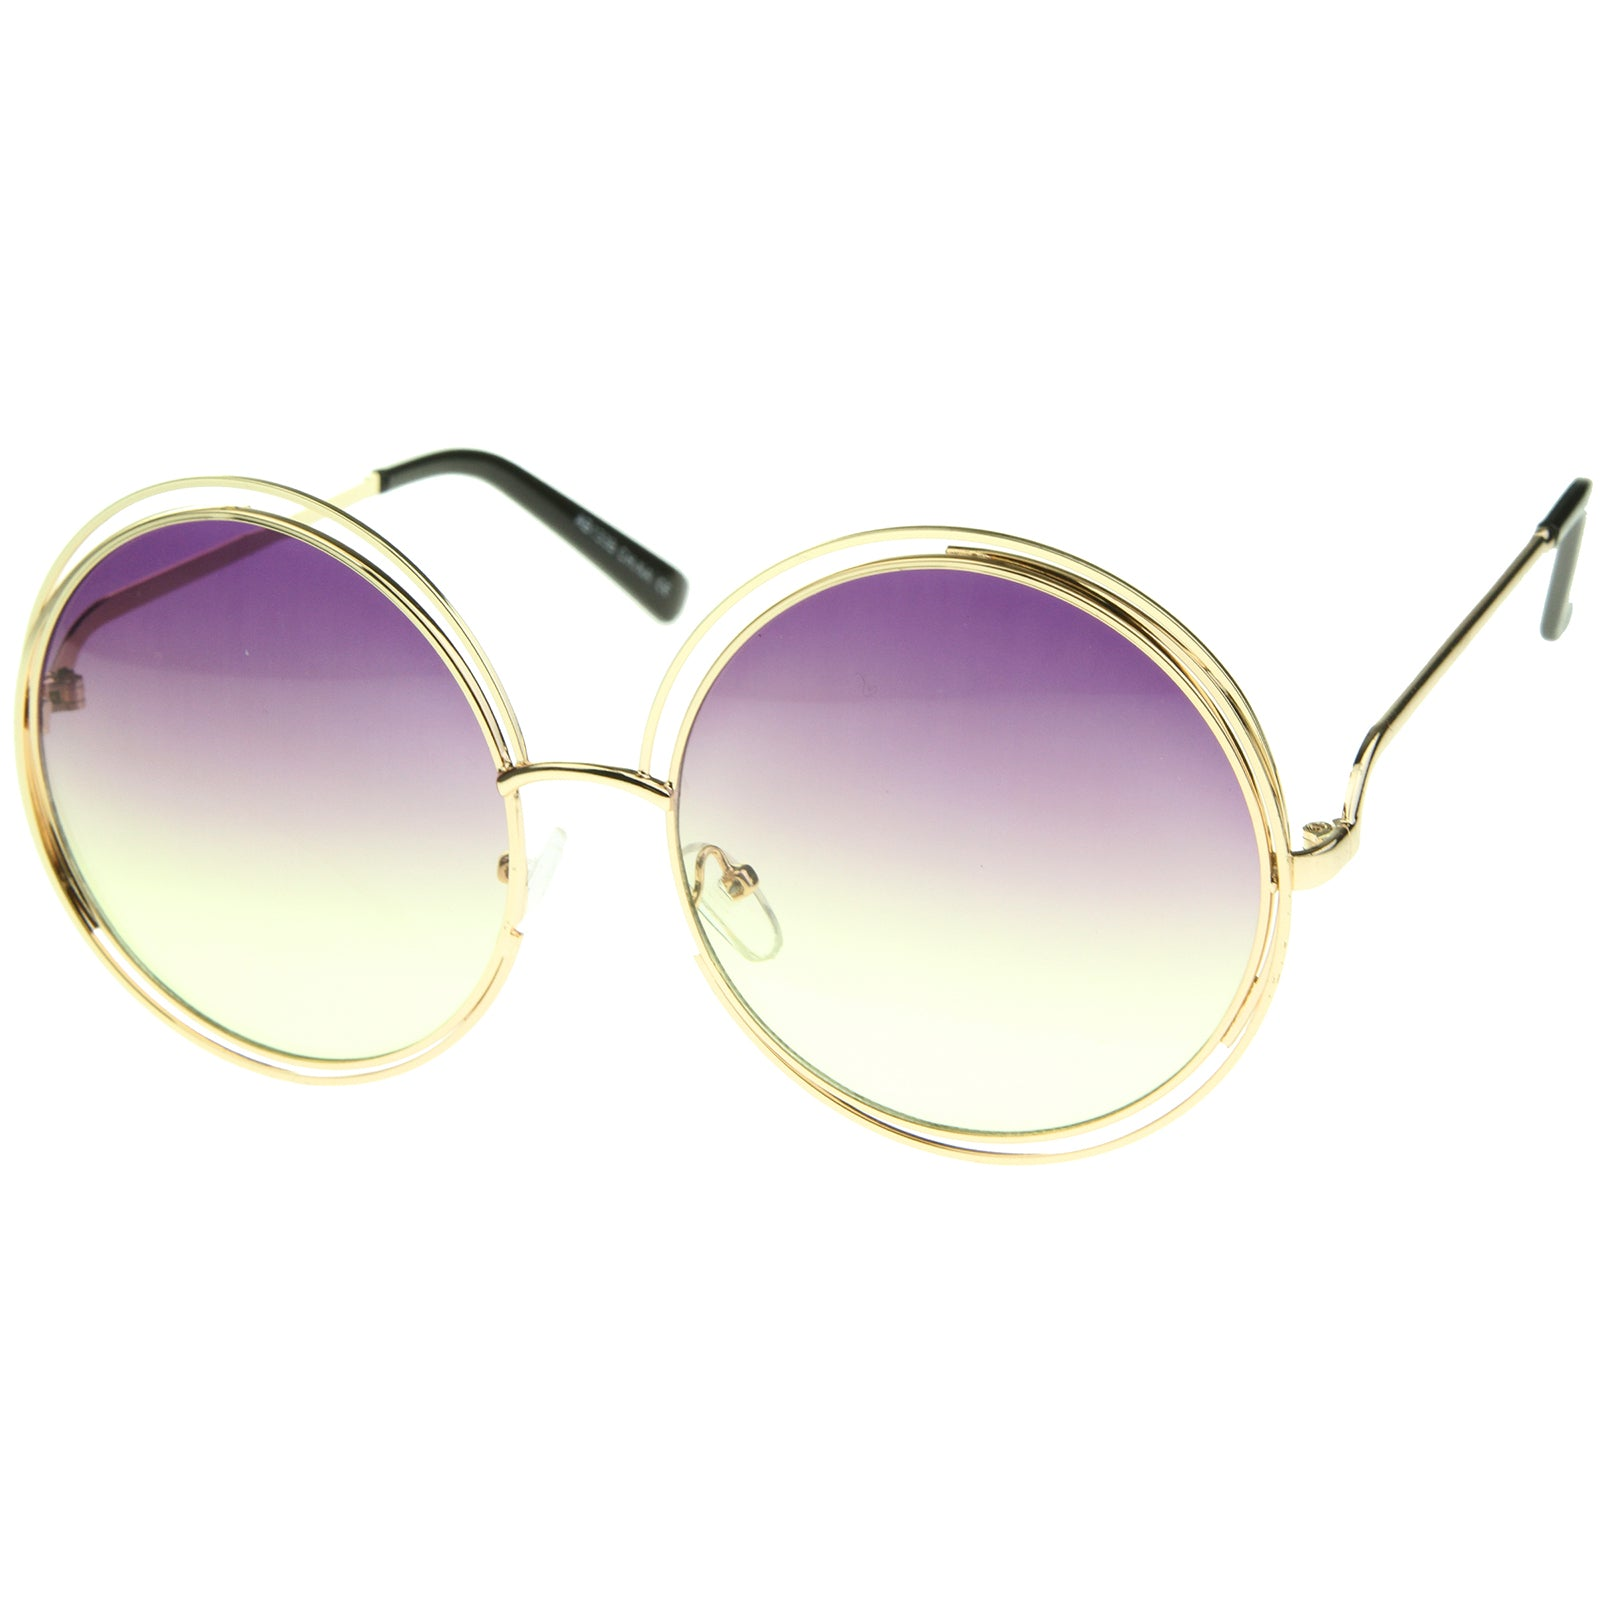 Oversize Wire Frame Gradient Two-Tone Color Lens Round Sunglasses 61mm - sunglass.la - 10